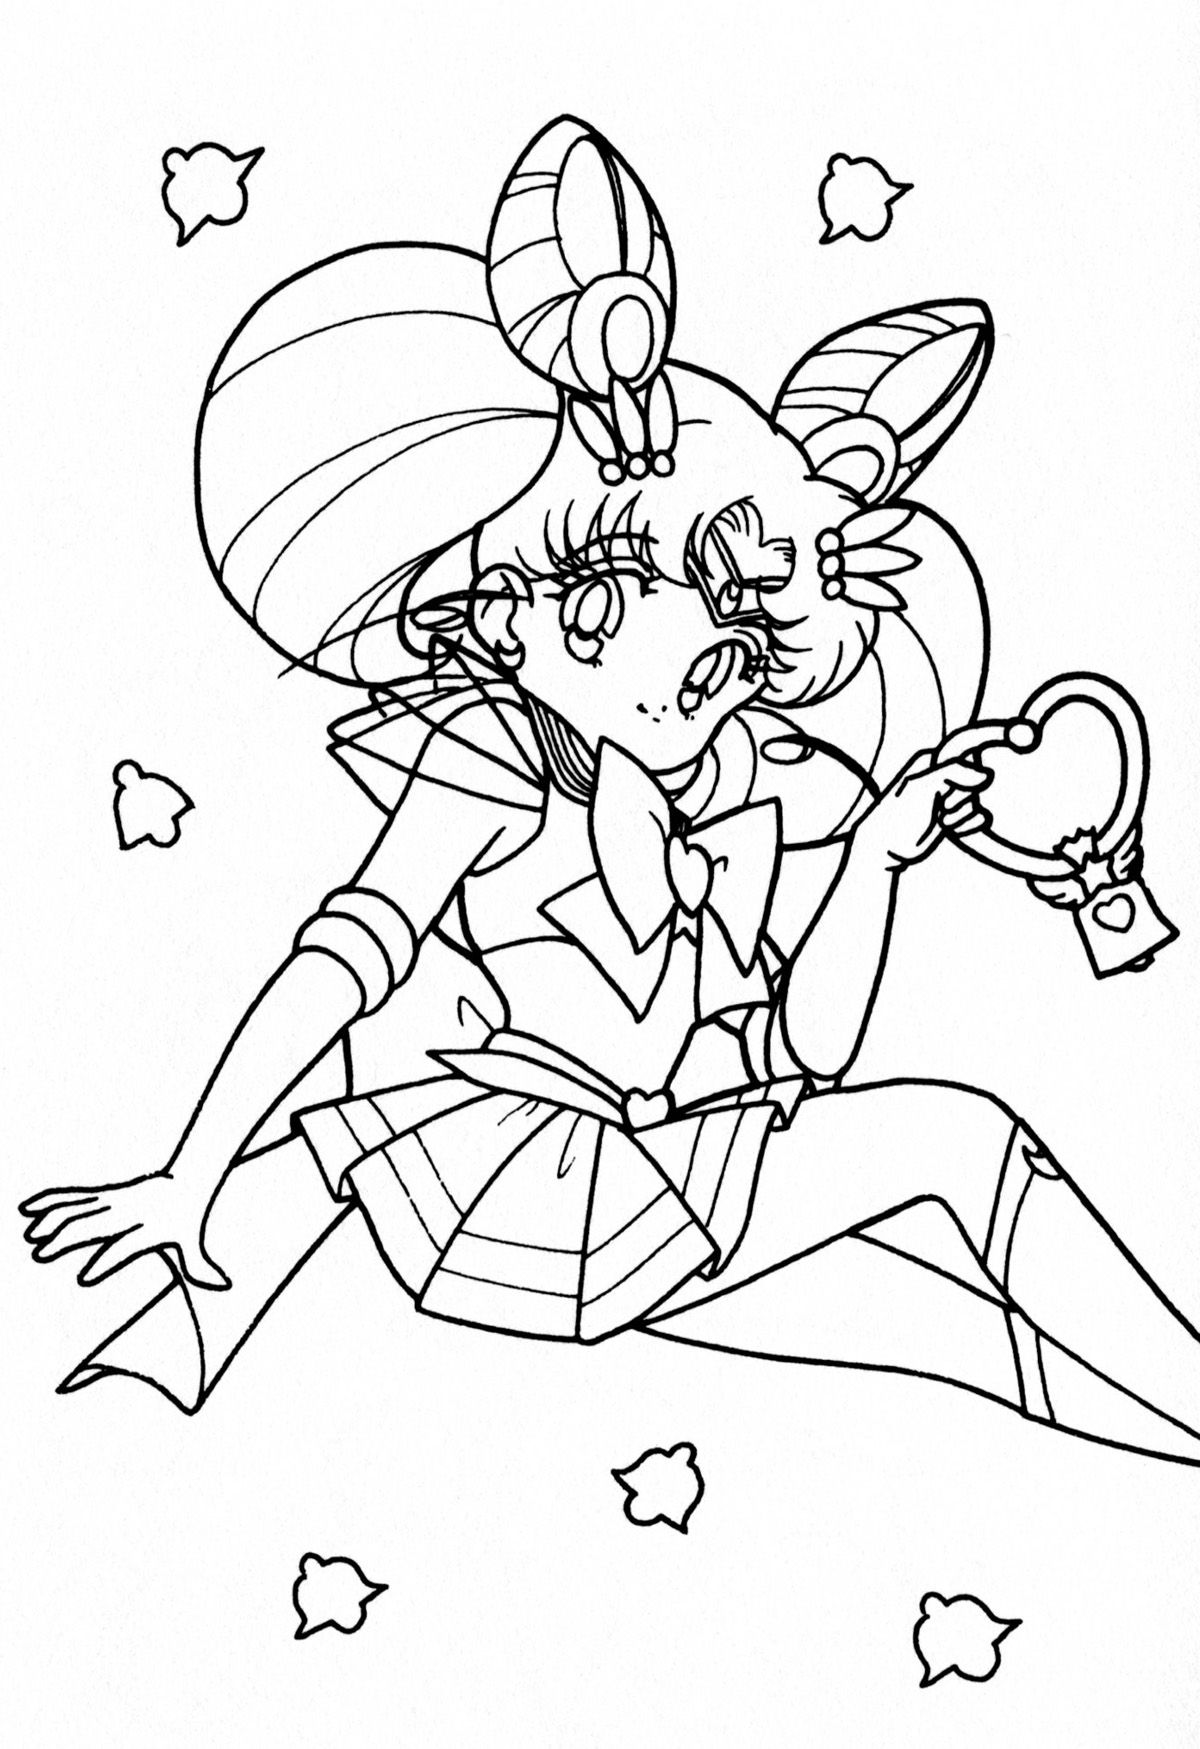 Free Printable Sailor Moon Coloring Pages For Kids | Sailor moon und ...